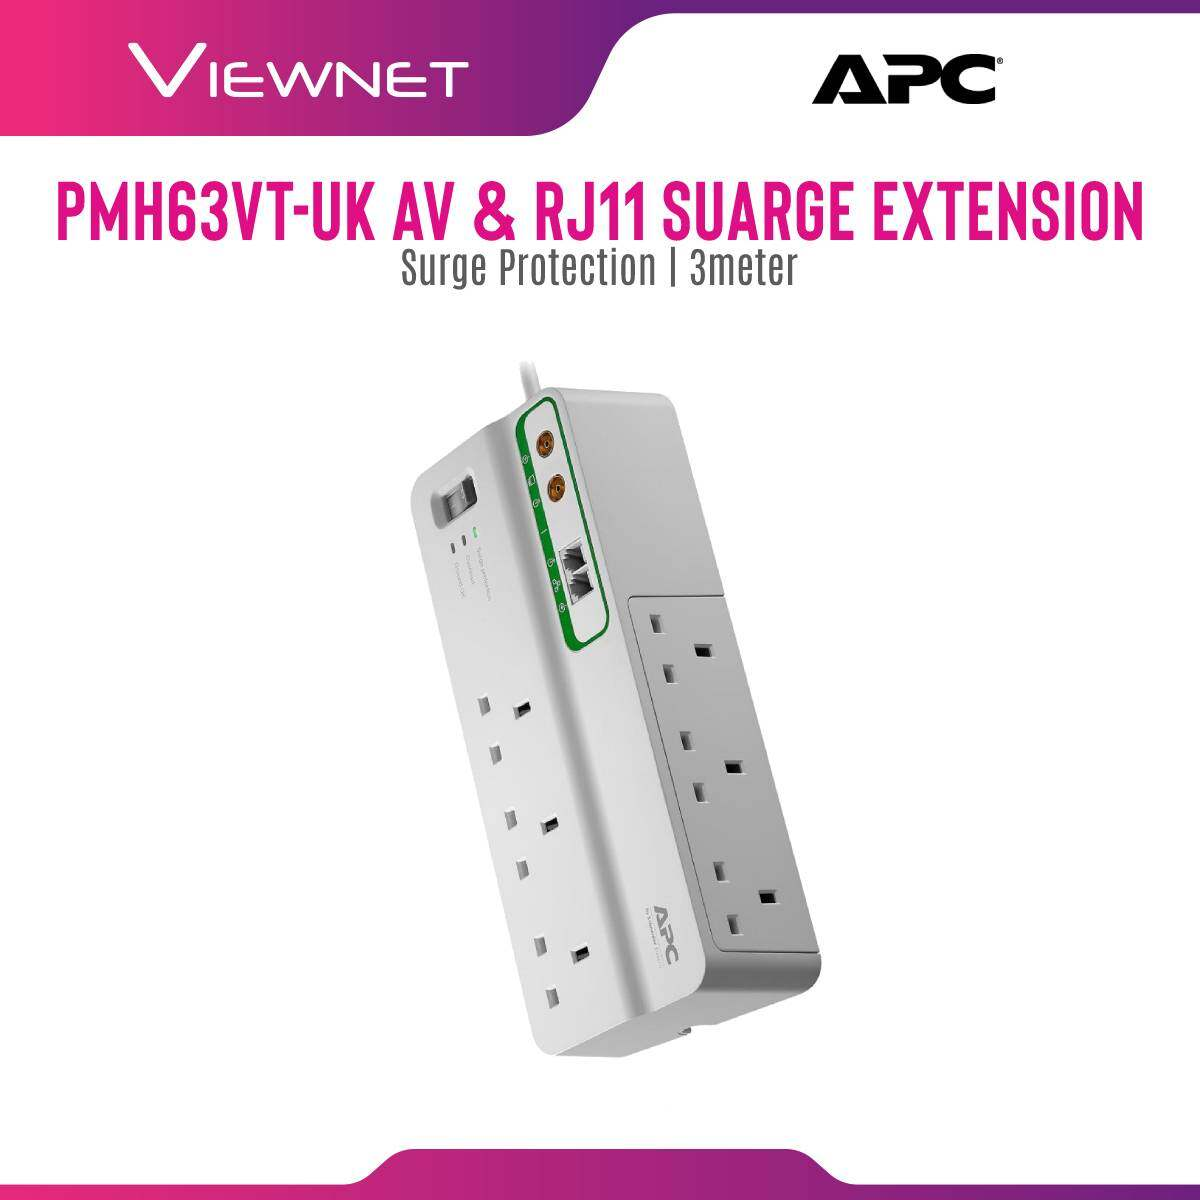 APC Home/Office SurgeArrest 6 PLUGs (PMH63VT-UK) with Phone and Coax Protection 230V UK